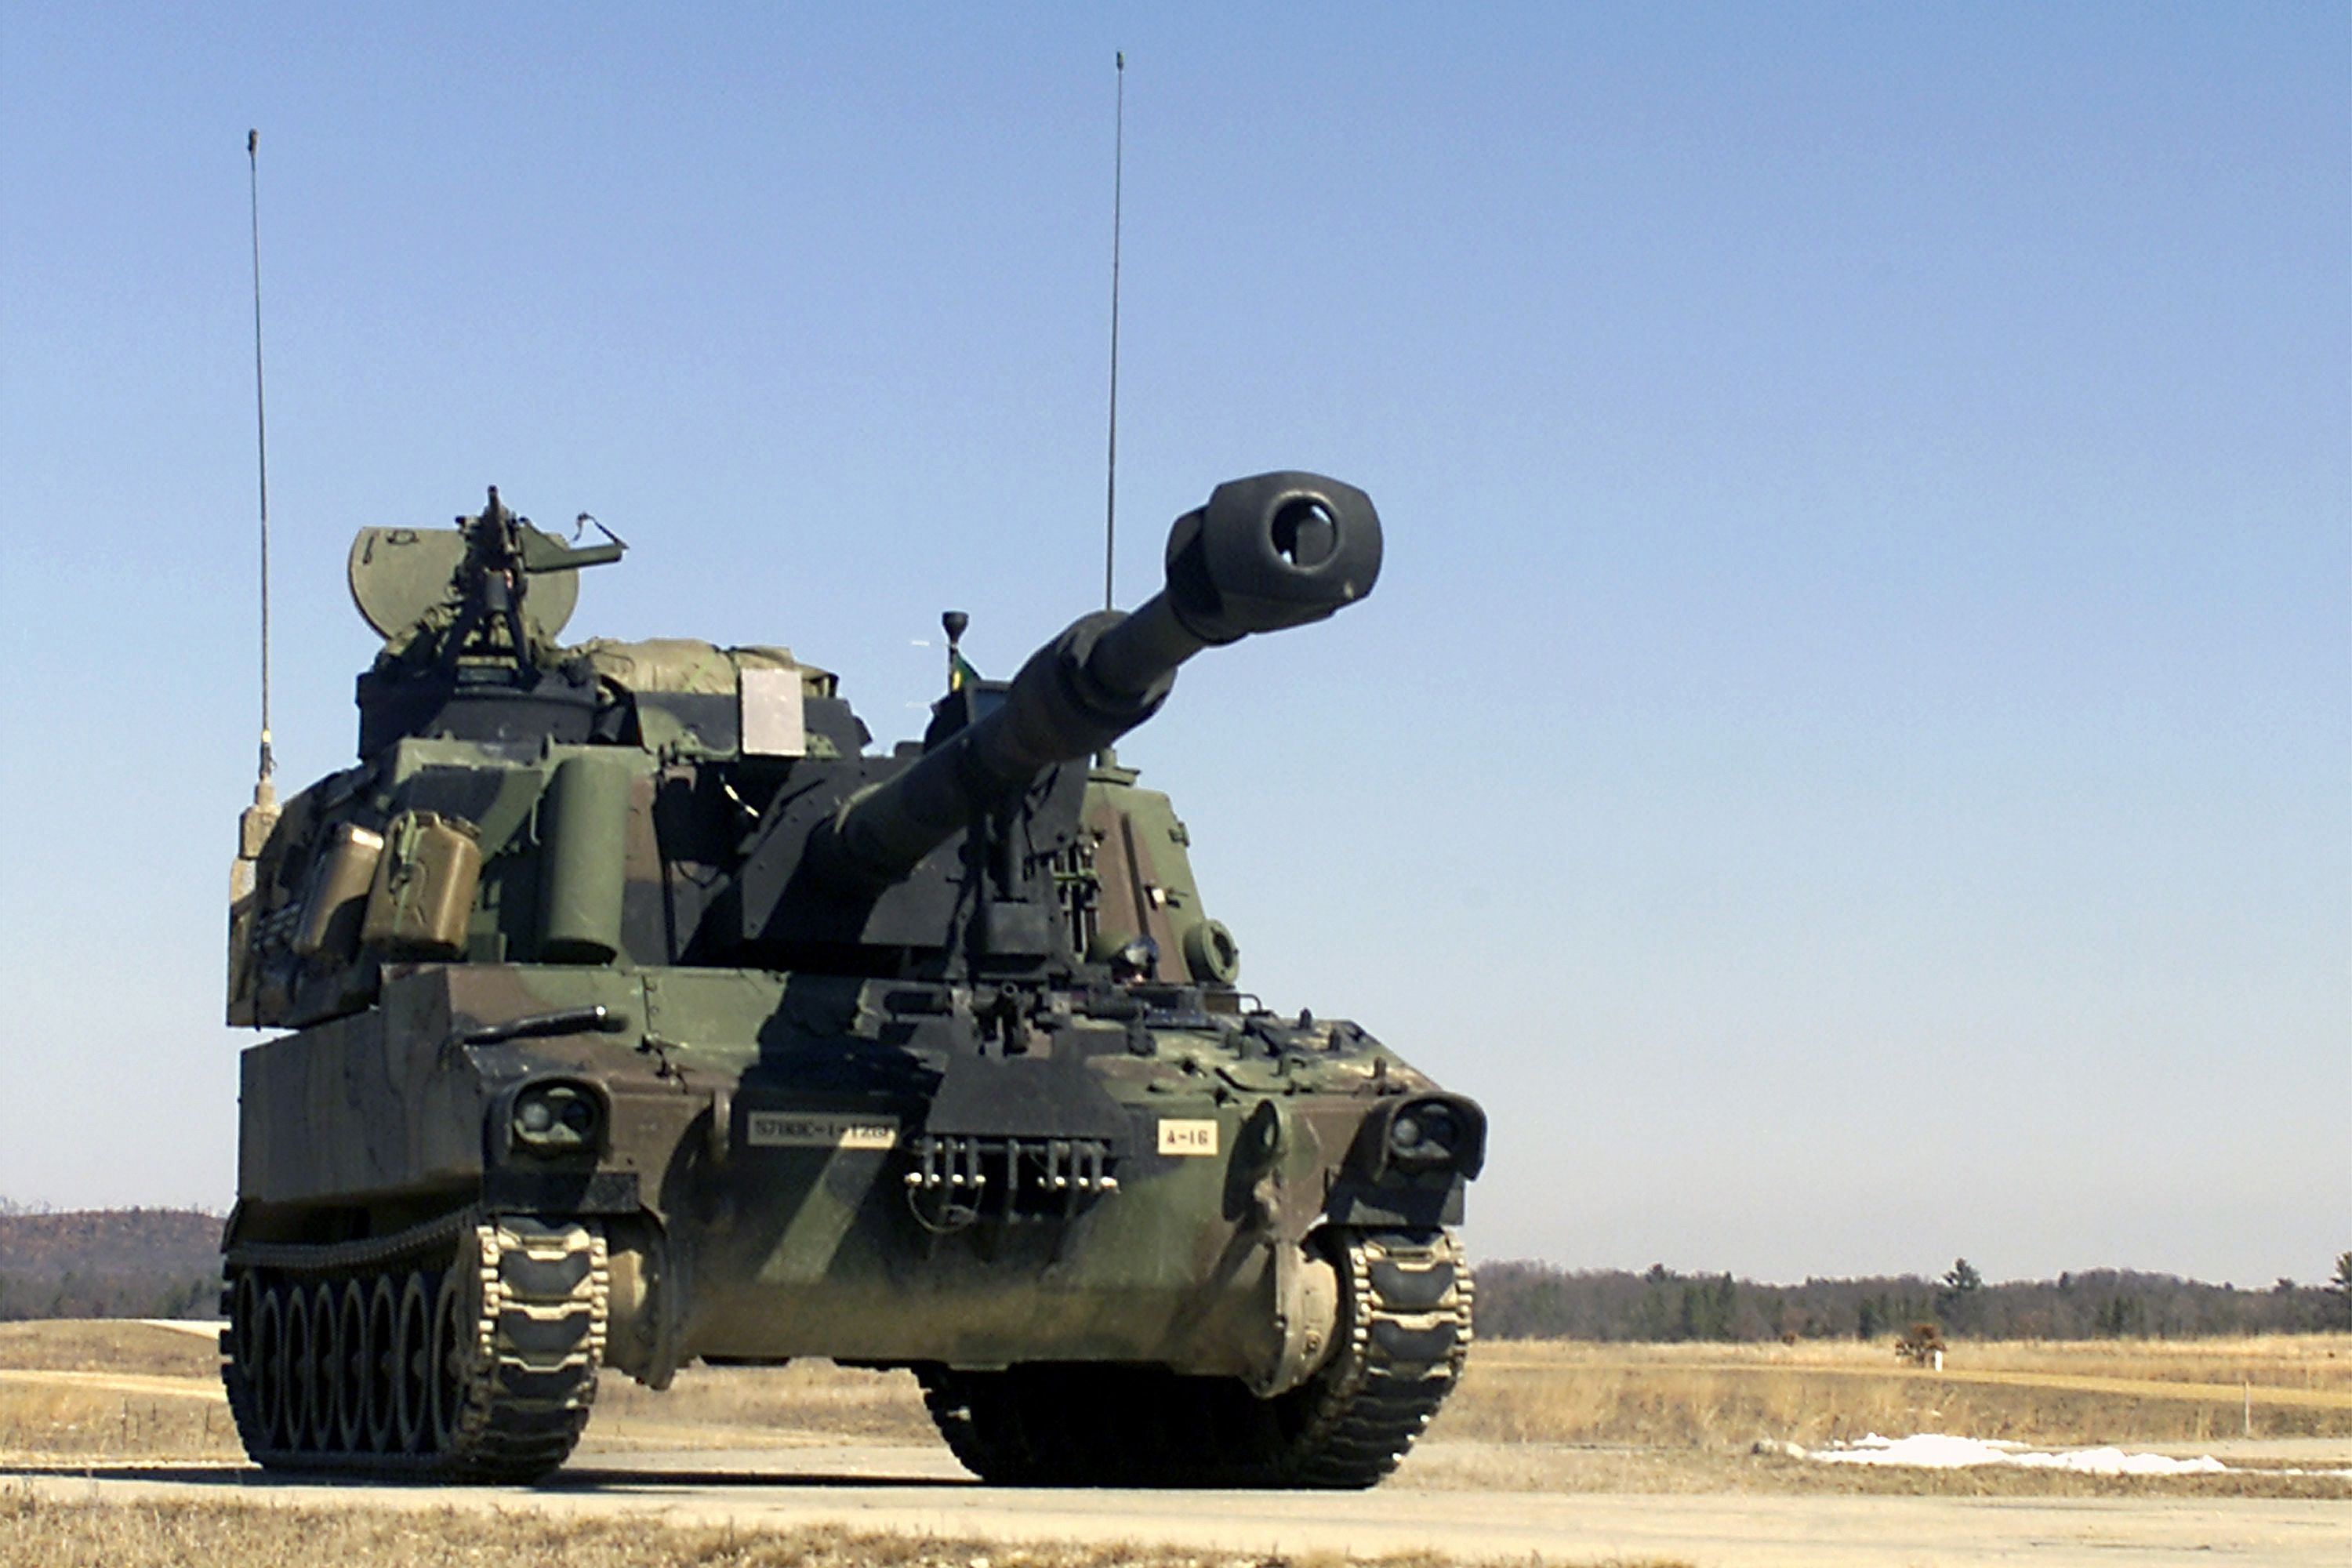 M109A6 Paladin 155mm Self-Propelled Artillery System. | Military armor, Army vehicles, Military ...